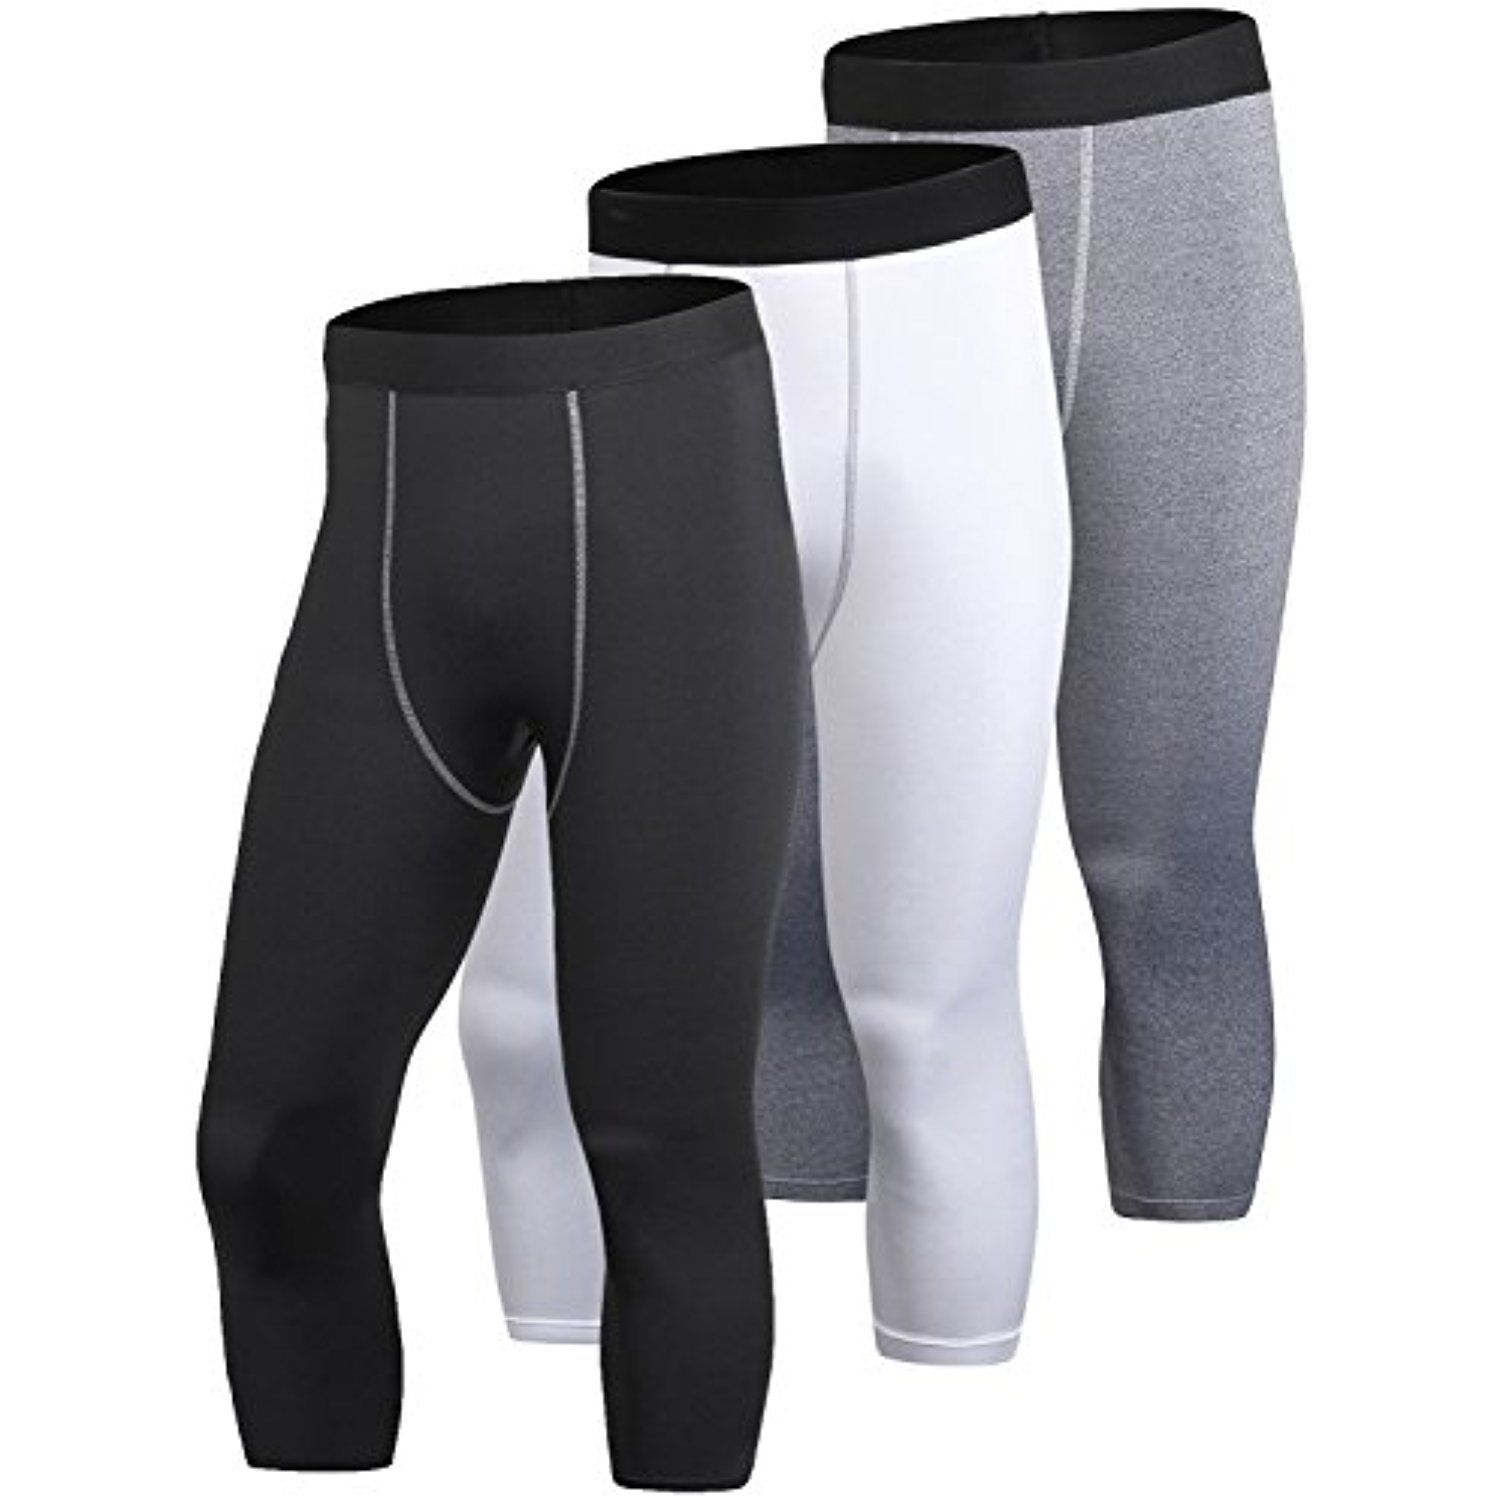 1851ef5fba8a5 Yuerlian Men's 3 Pack Compression 3/4 Capri Shorts Baselayer Cool Dry Sports  Tights >>> Check this awesome product by going to the link at the image.